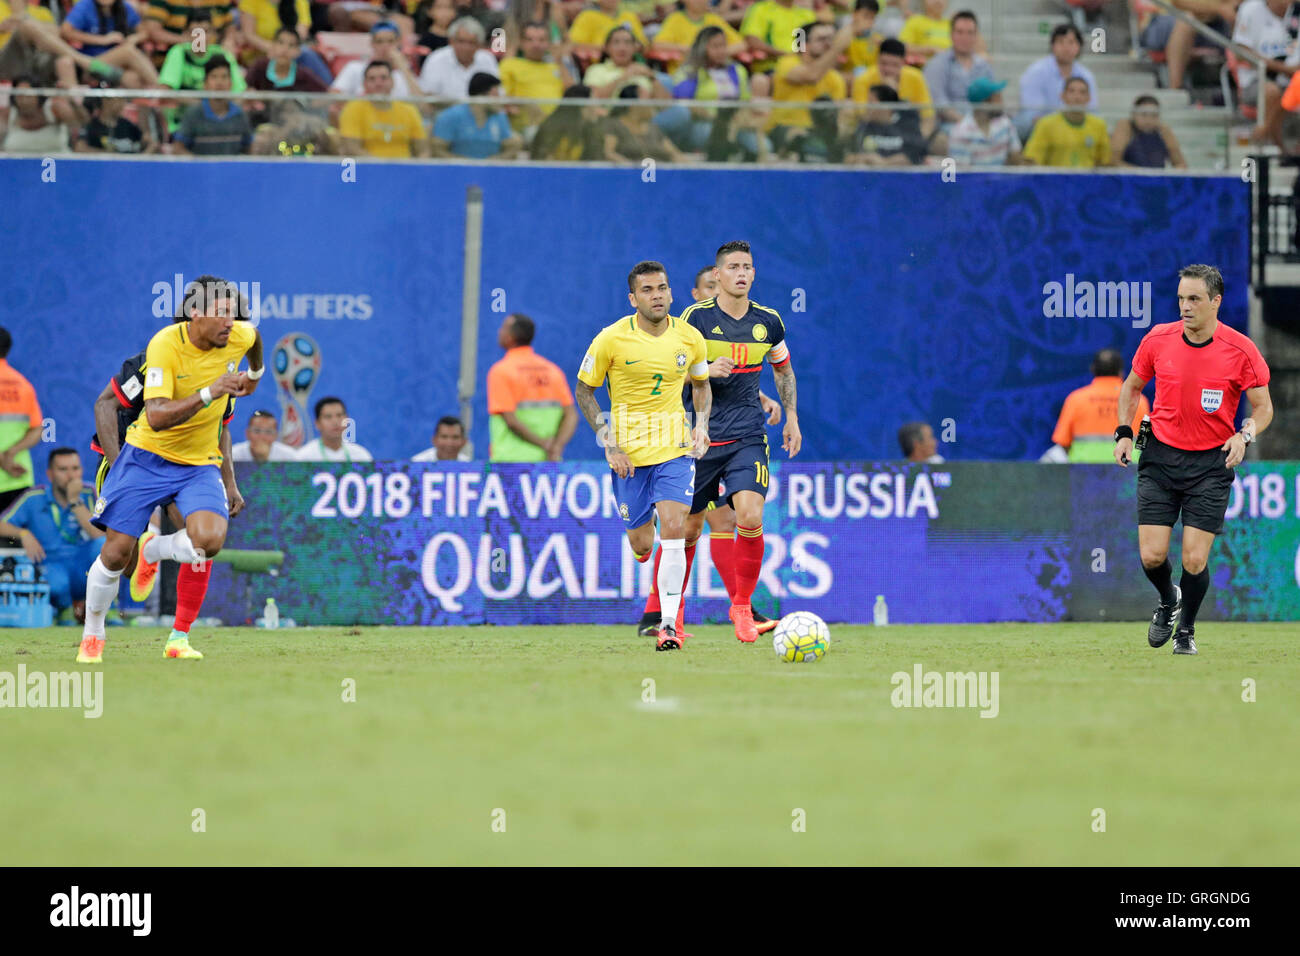 MANAUS, AM - 06.09.2016: BRAZIL VS COLOMBIA - Damiel Alves leads the attack on the ball during the match between - Stock Image